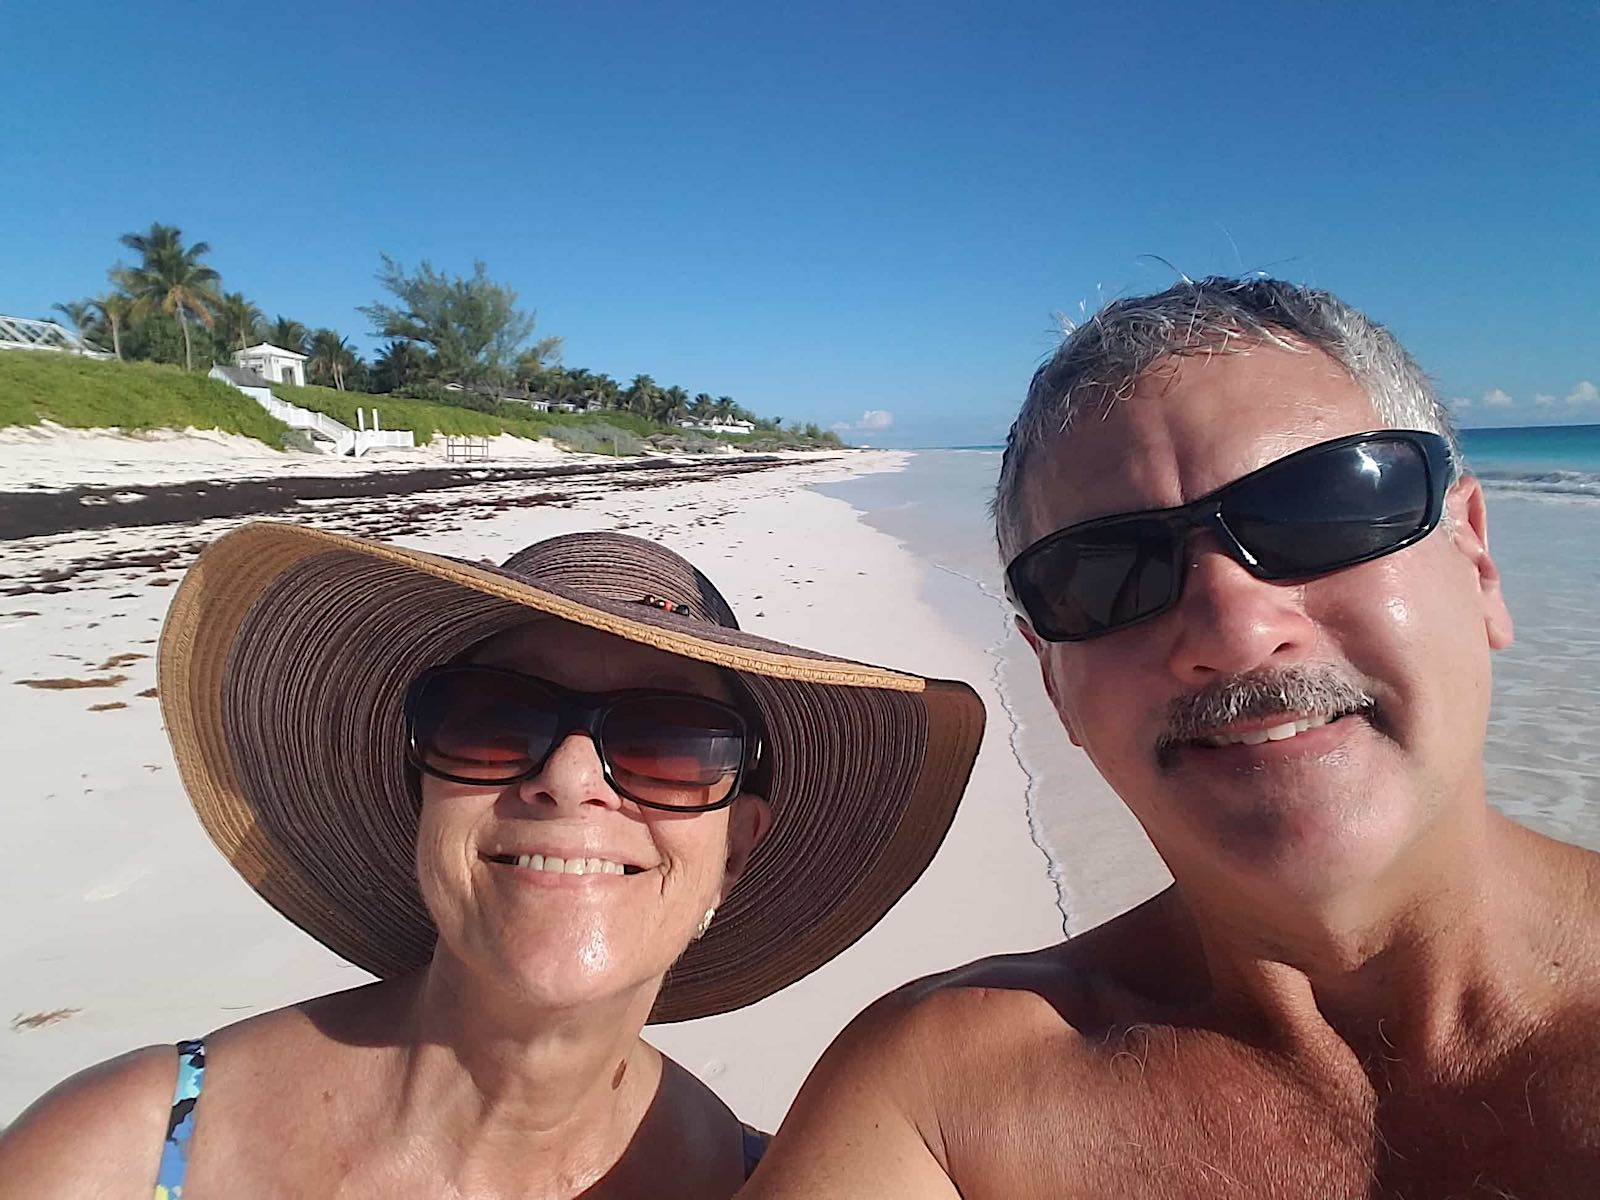 gail taking a selfie with man on the beach